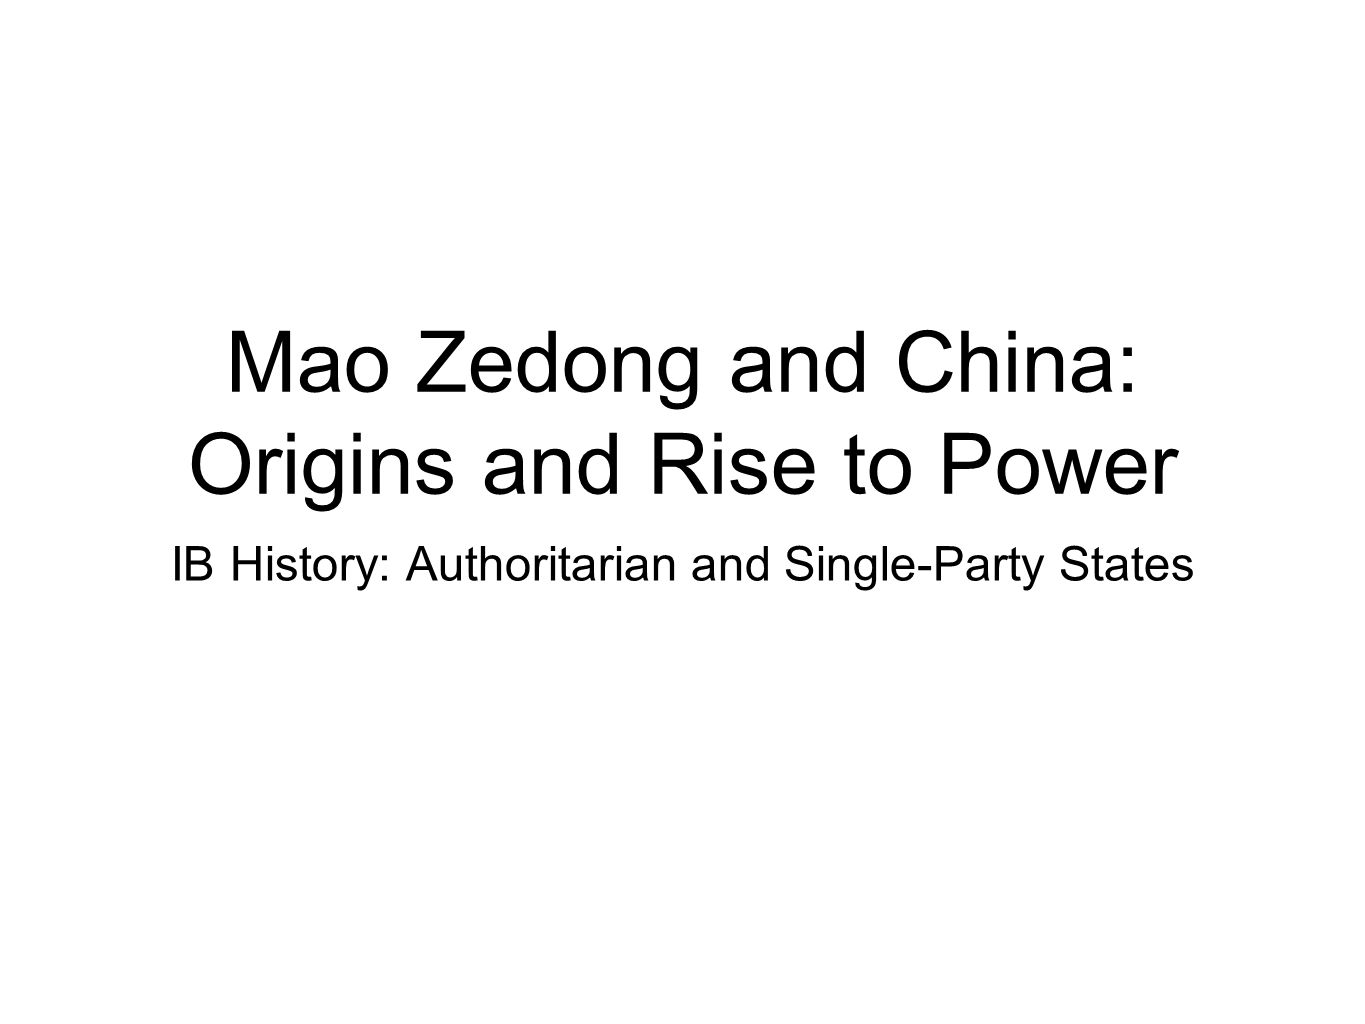 Mao Zedong and China: Origins and Rise to Power IB History: Authoritarian and Single-Party States